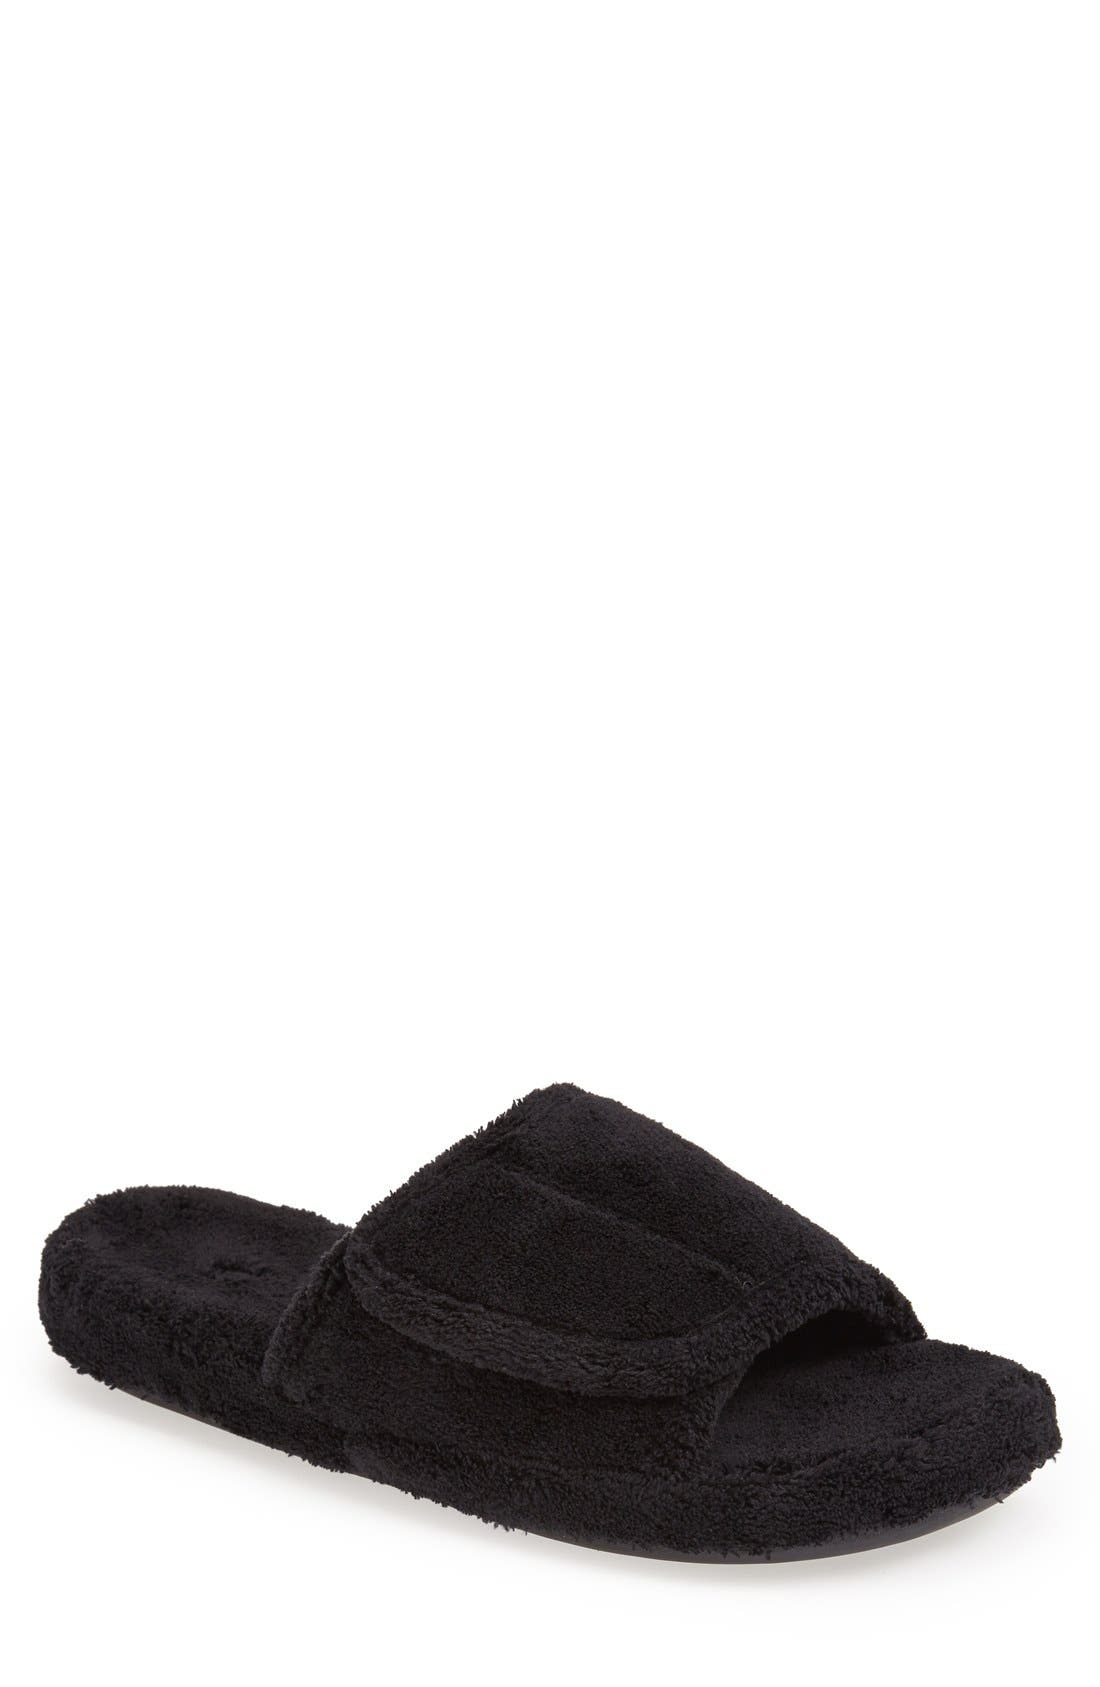 'Spa' Slipper, Main, color, BLACK